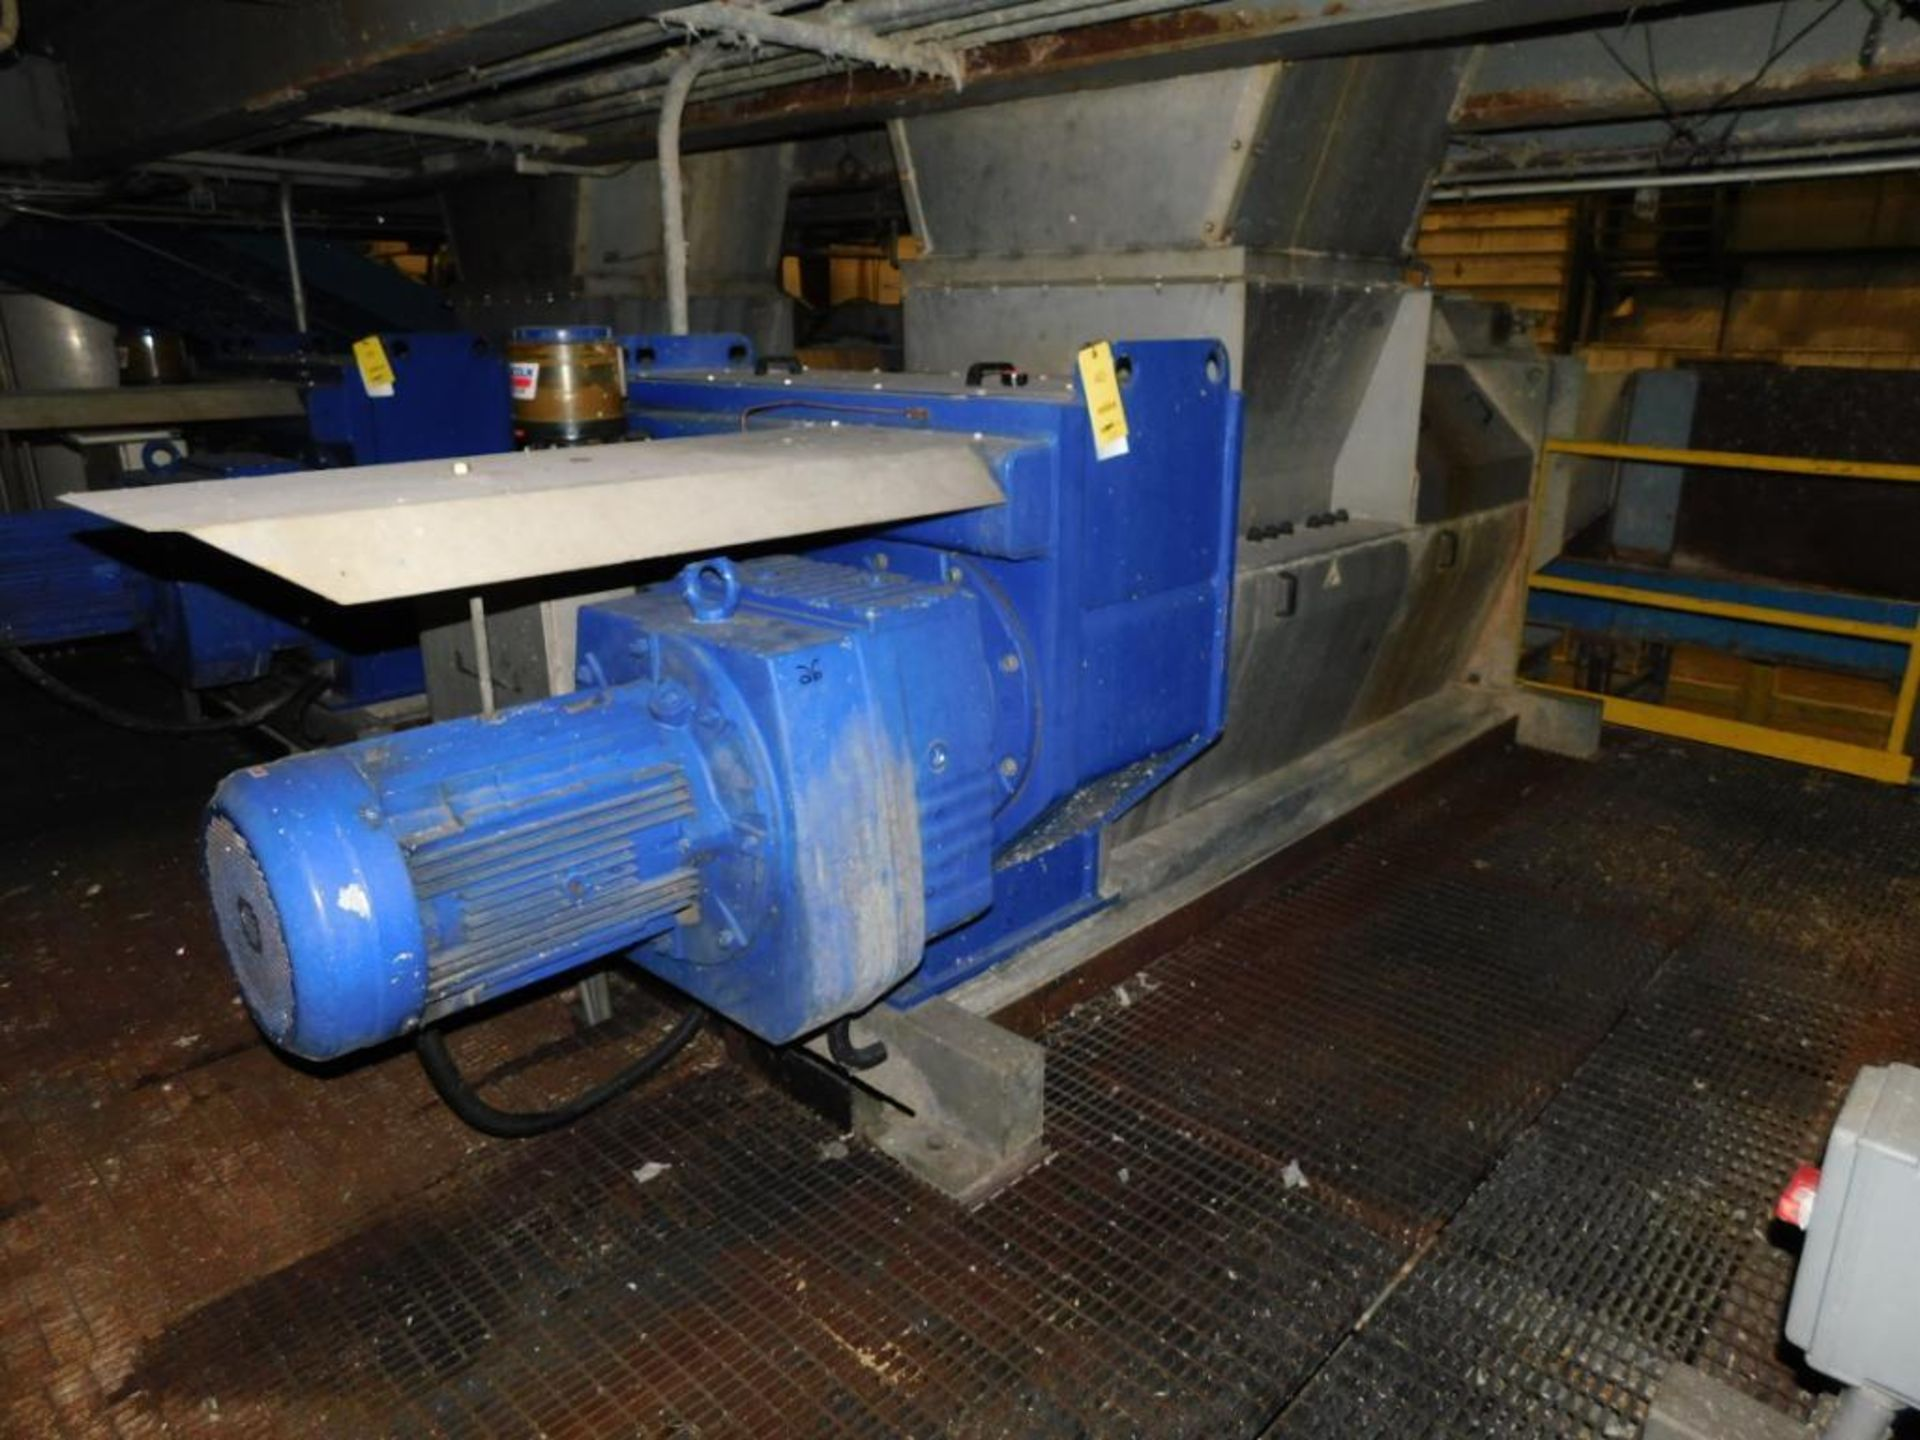 Lot 40 - Trumag/Meri Compax Screw Press Model CFX60R, S/N 11141 (2009), Driven by 30kw Motor (#EC-774-02-024,